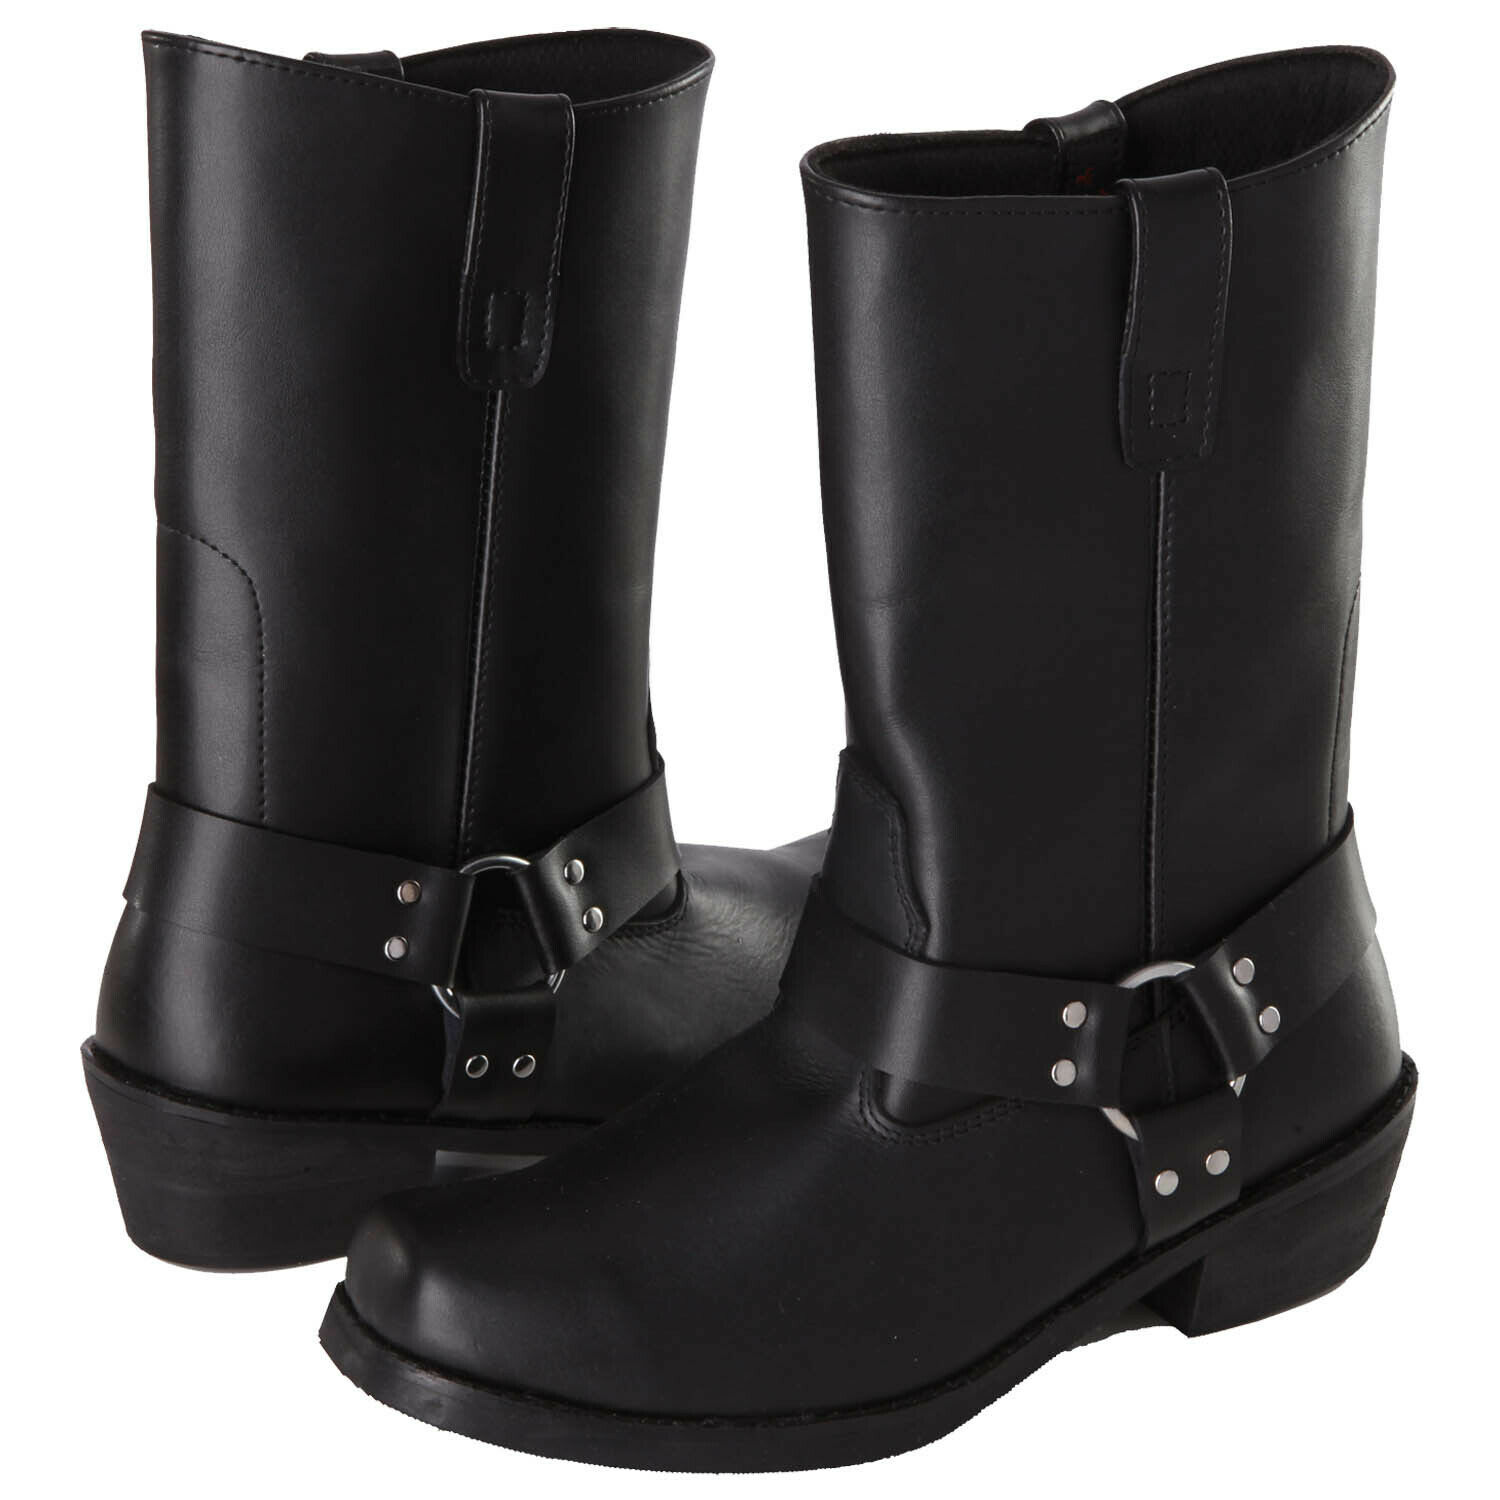 Modeka Chopper Dry Motorcycle Boots Leather - Black